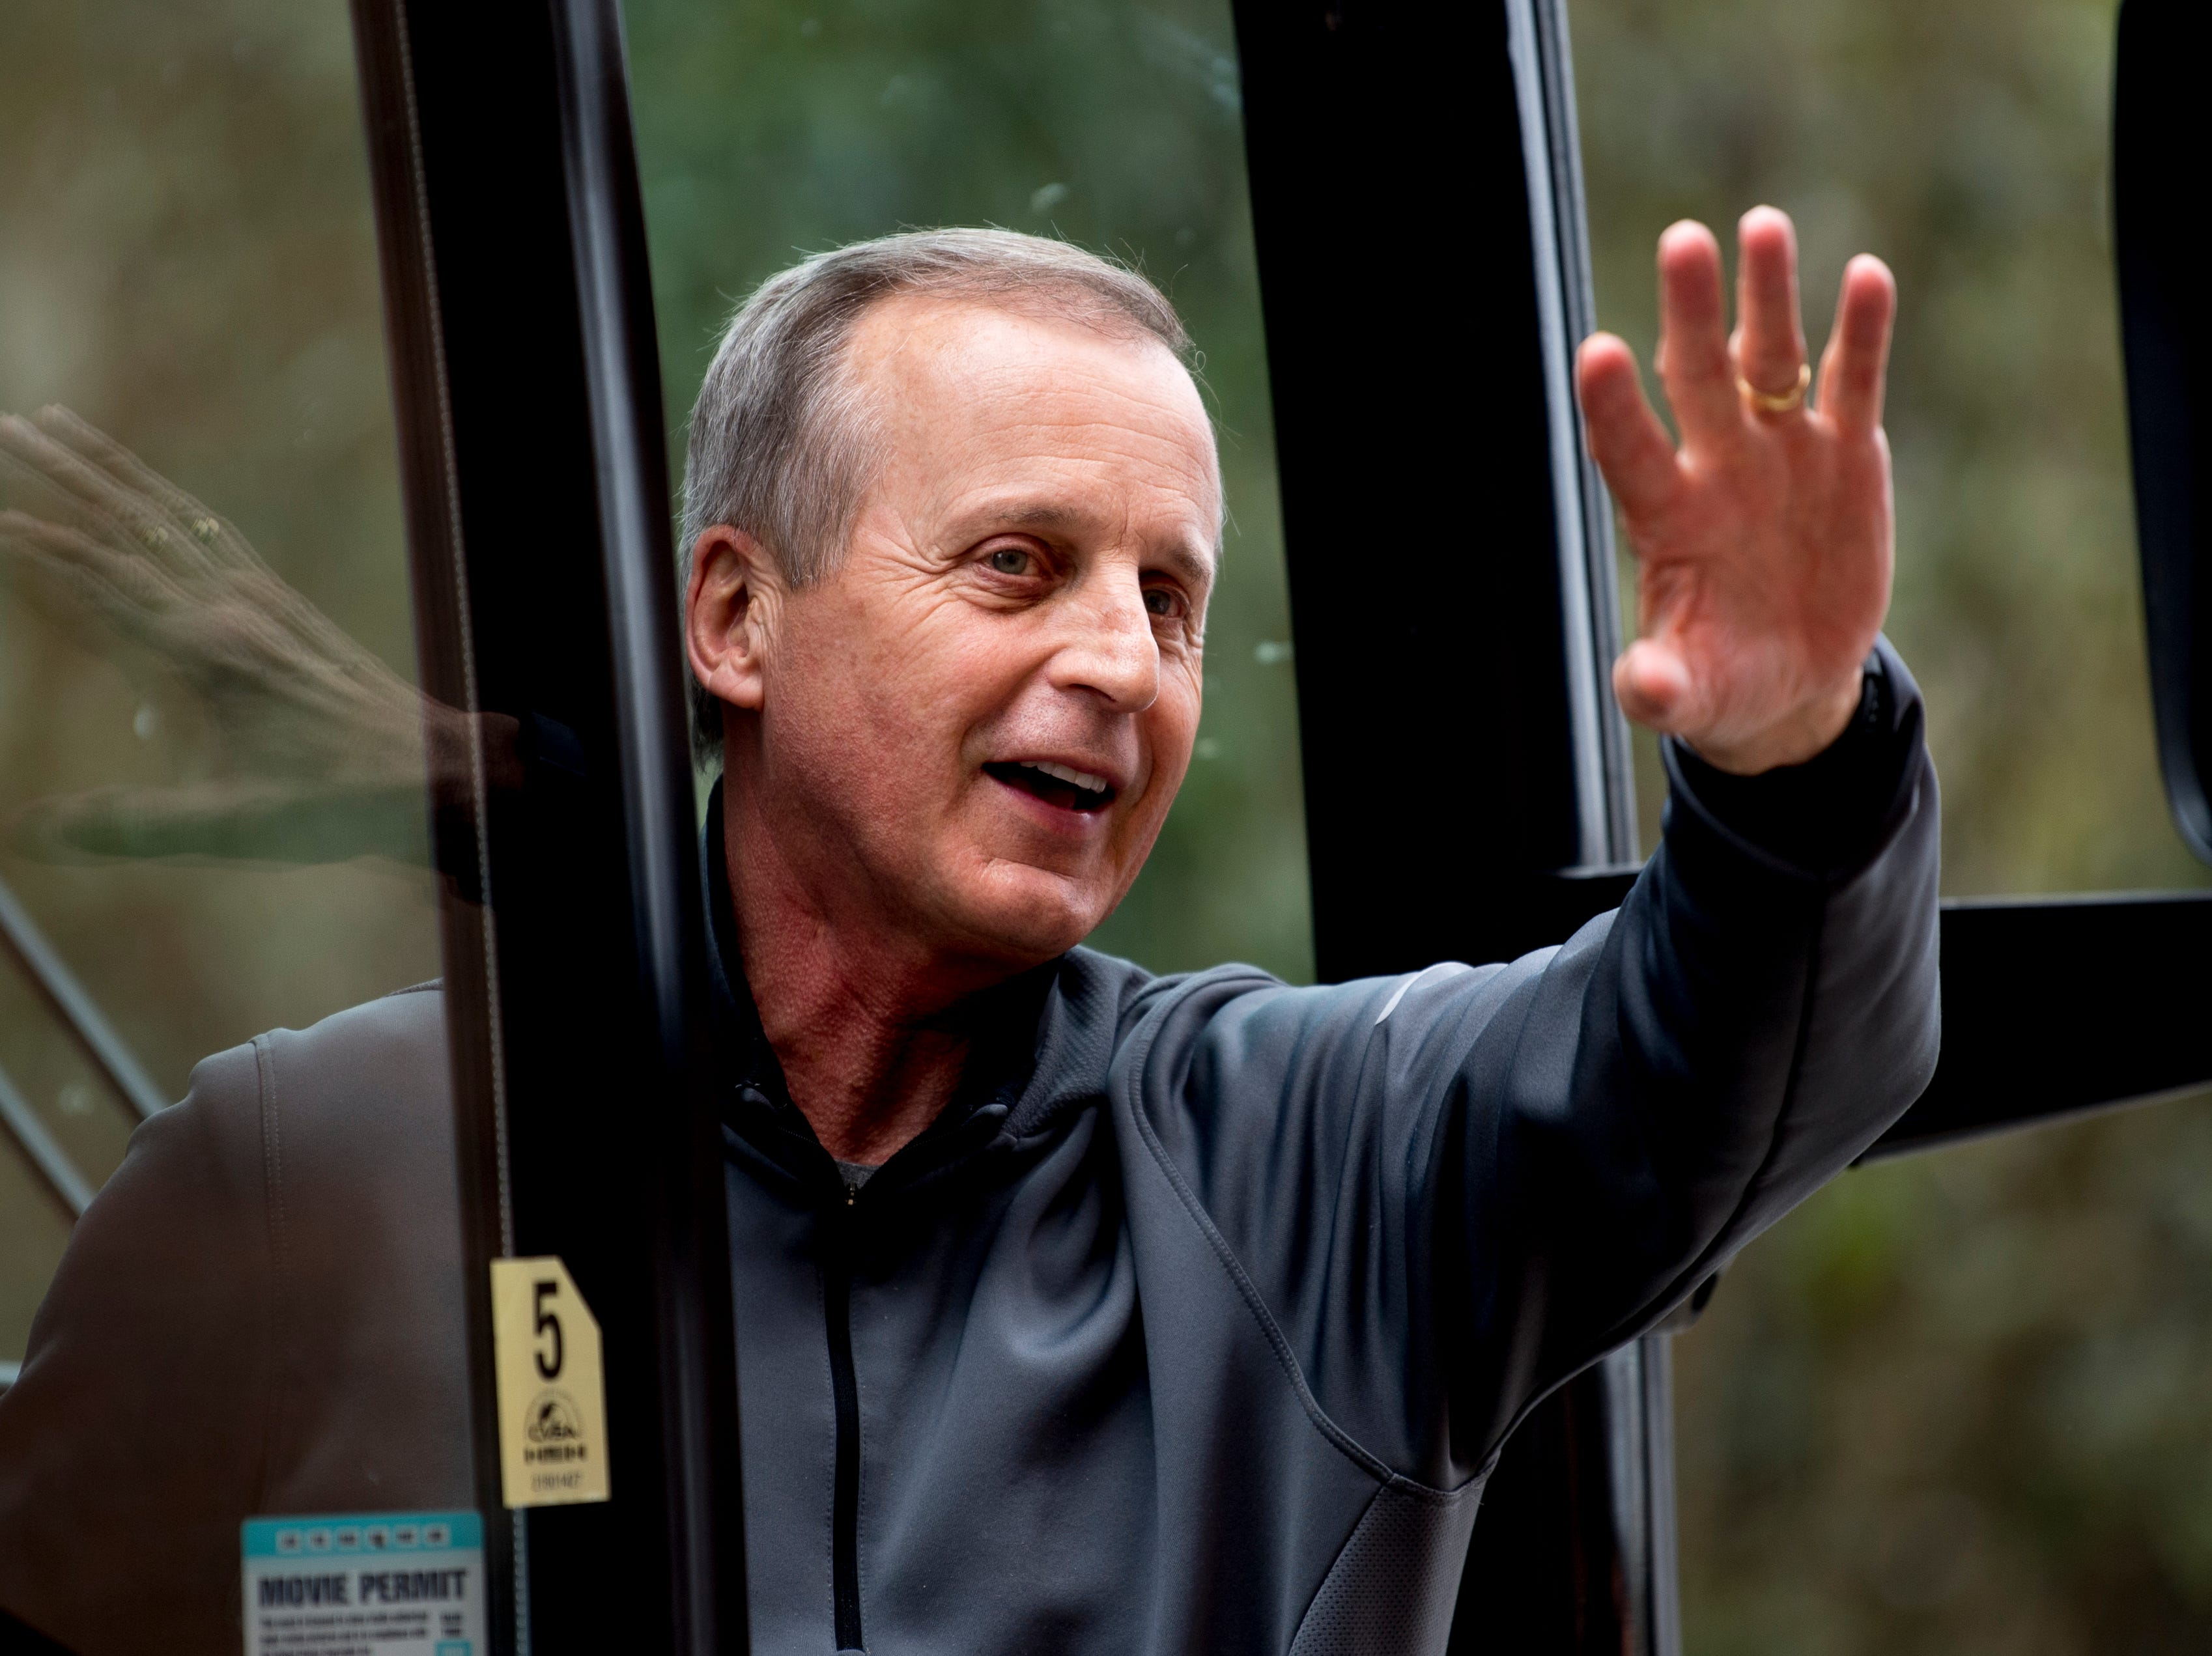 Tennessee Head Coach Rick Barnes waves to fans from the bus upon returning to Stokley Hall in Knoxville, Tennessee on Friday, March 29, 2019. The Vols fell to Purdue Thursday night during the Sweet 16 of the NCAA tournament.